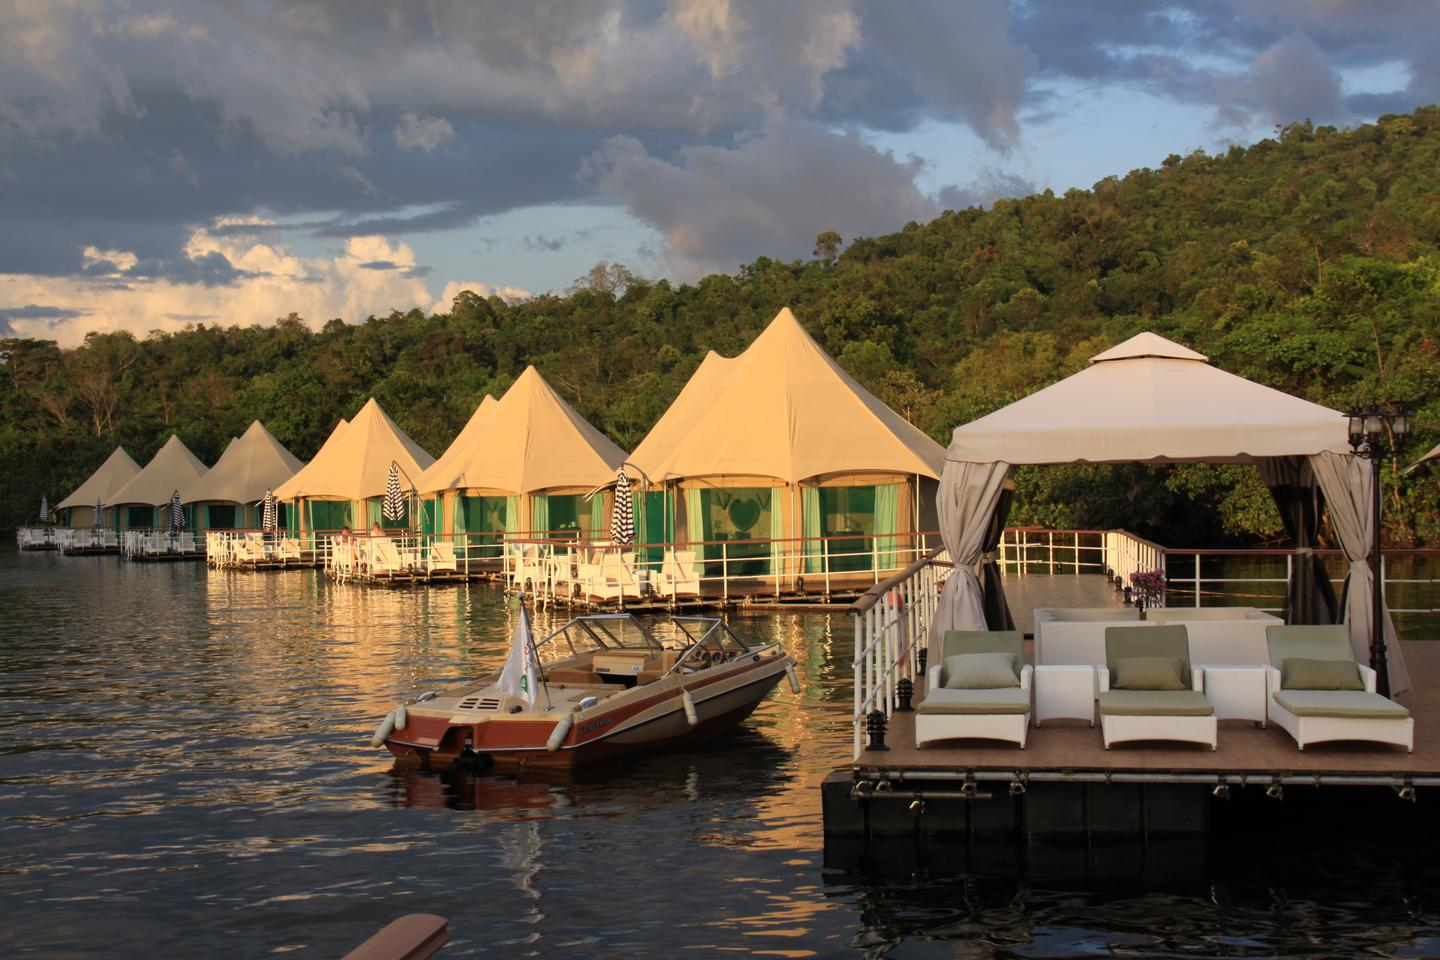 A series of 12 tents float on top the Tatai River